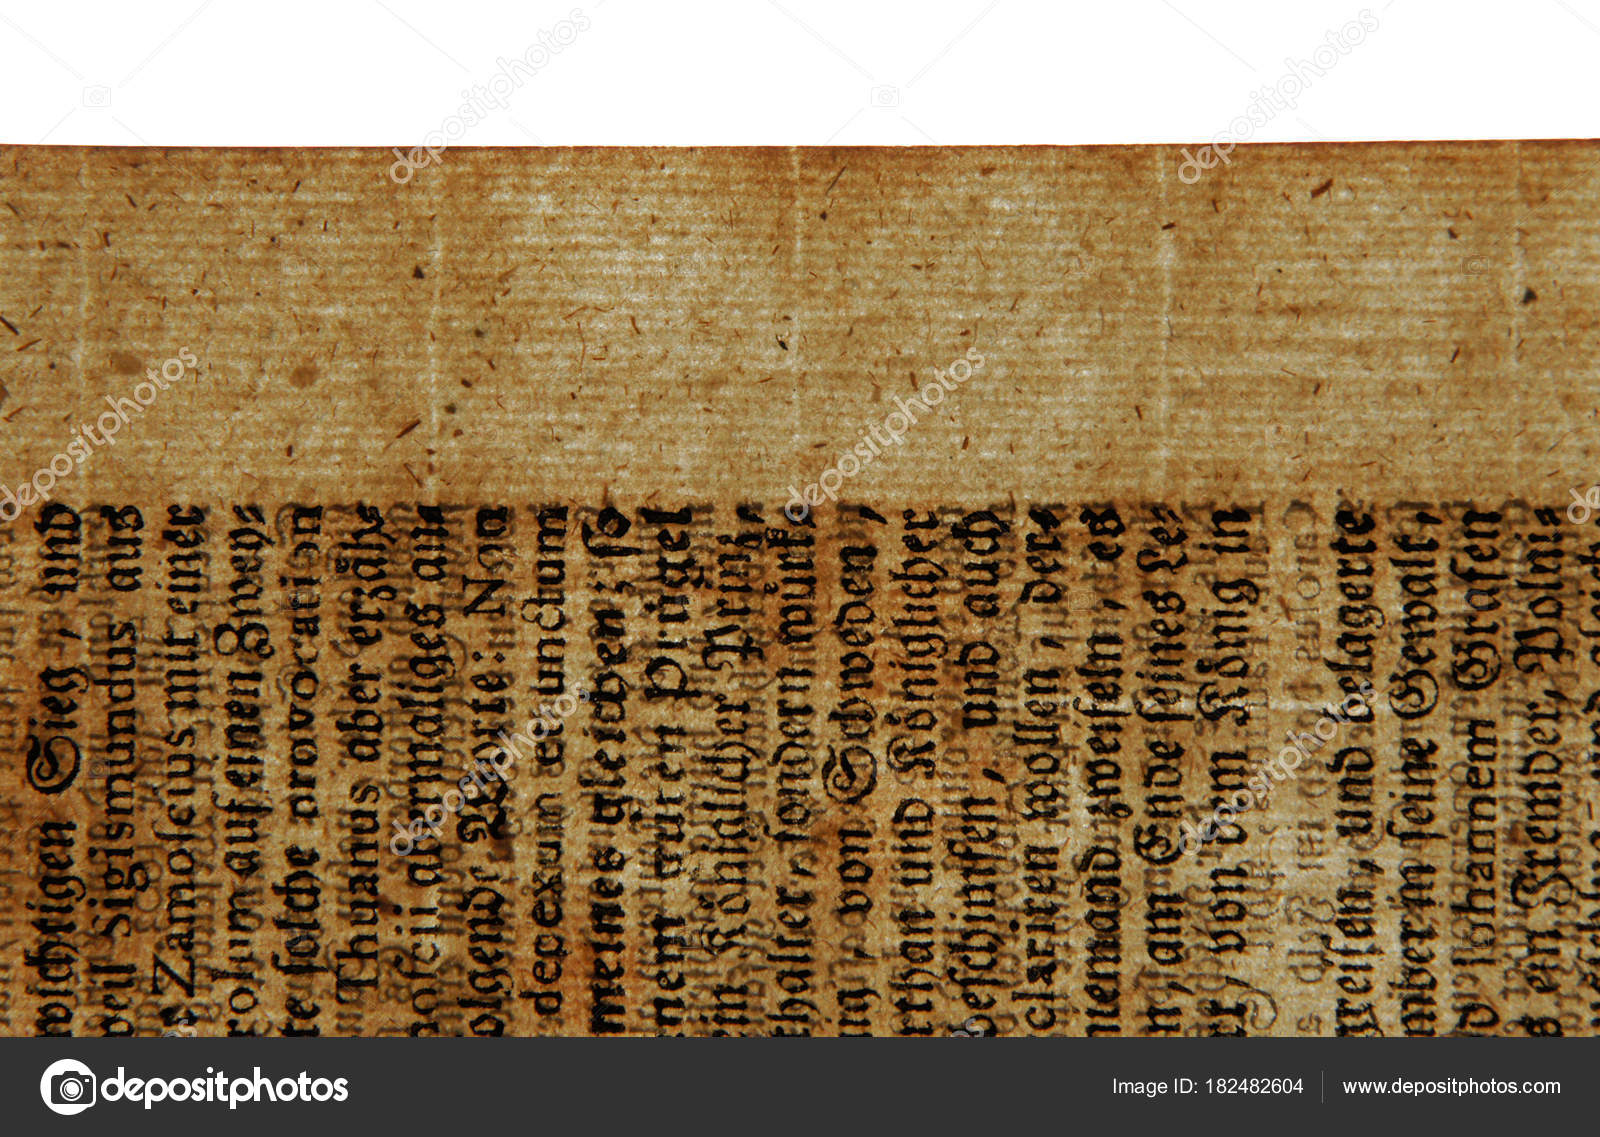 An Ancient Sheet Of 17th Century Paper With Gothic Letters Illustrates The Old Making Technology Photo By V Nikitenko